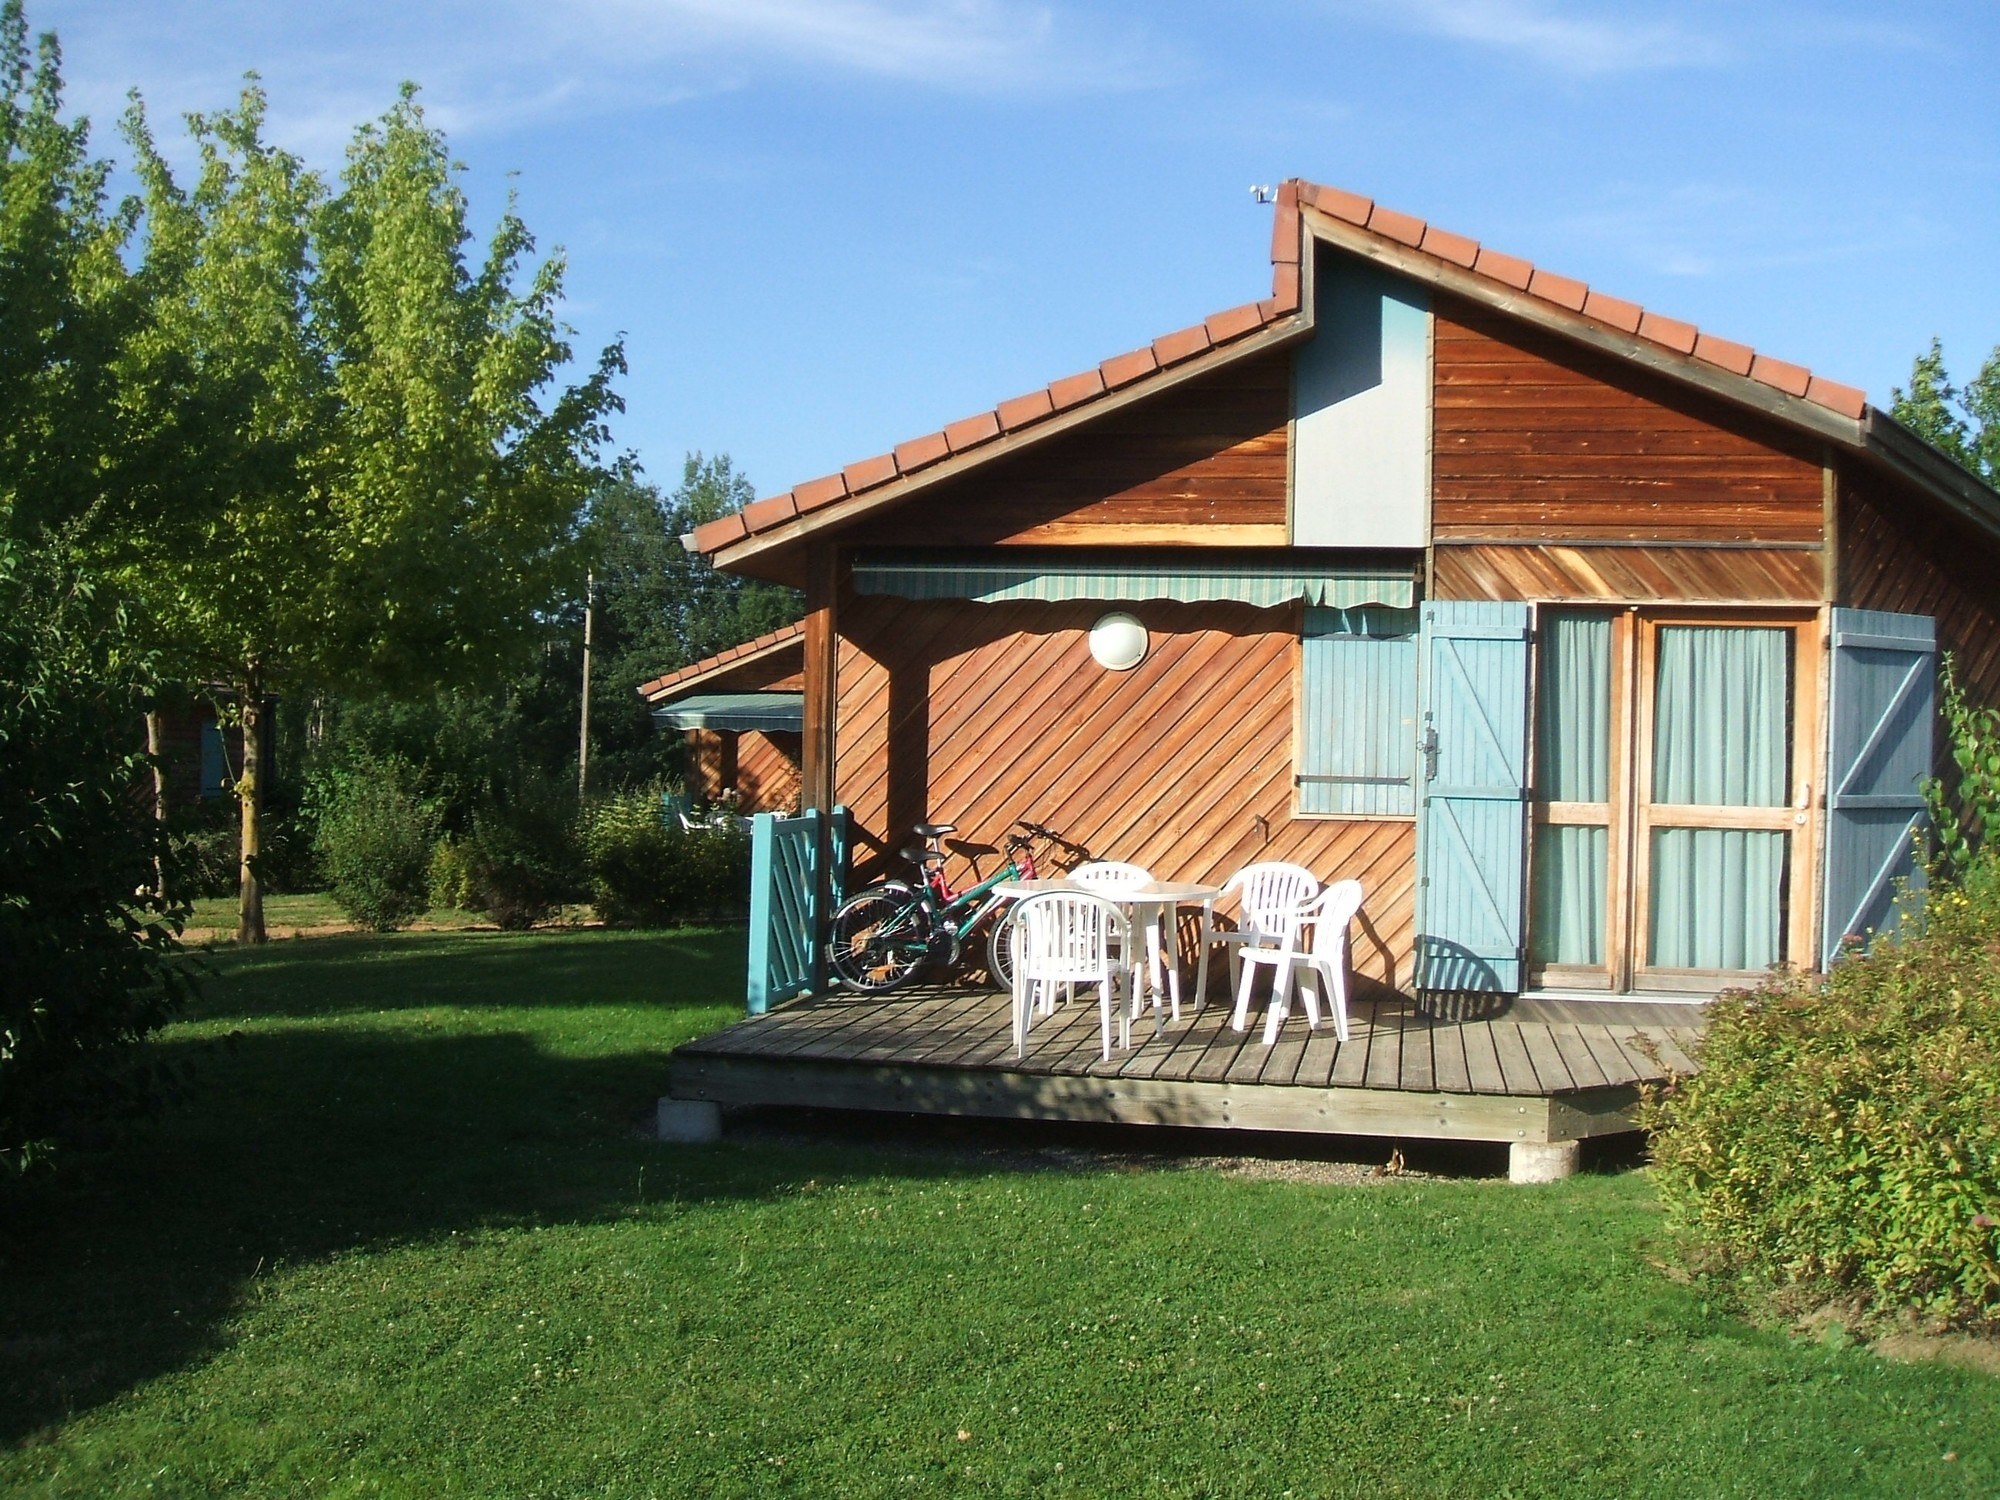 Camping municipal Le Colombier